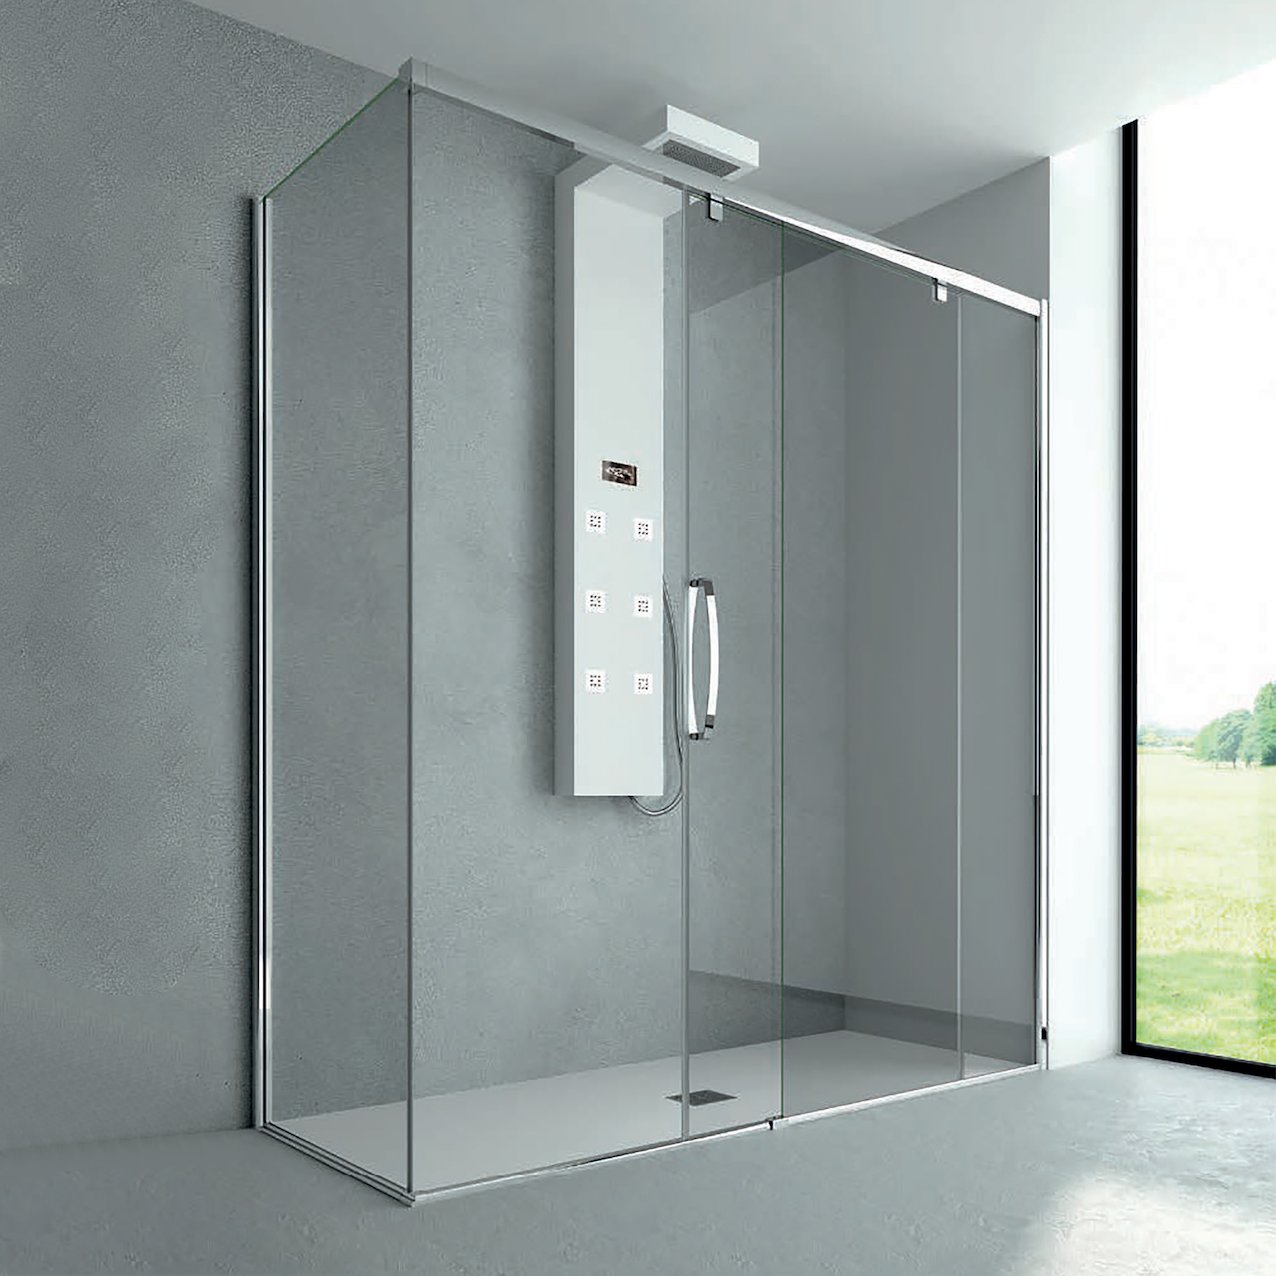 Sliding Shower Enclosure Gotka